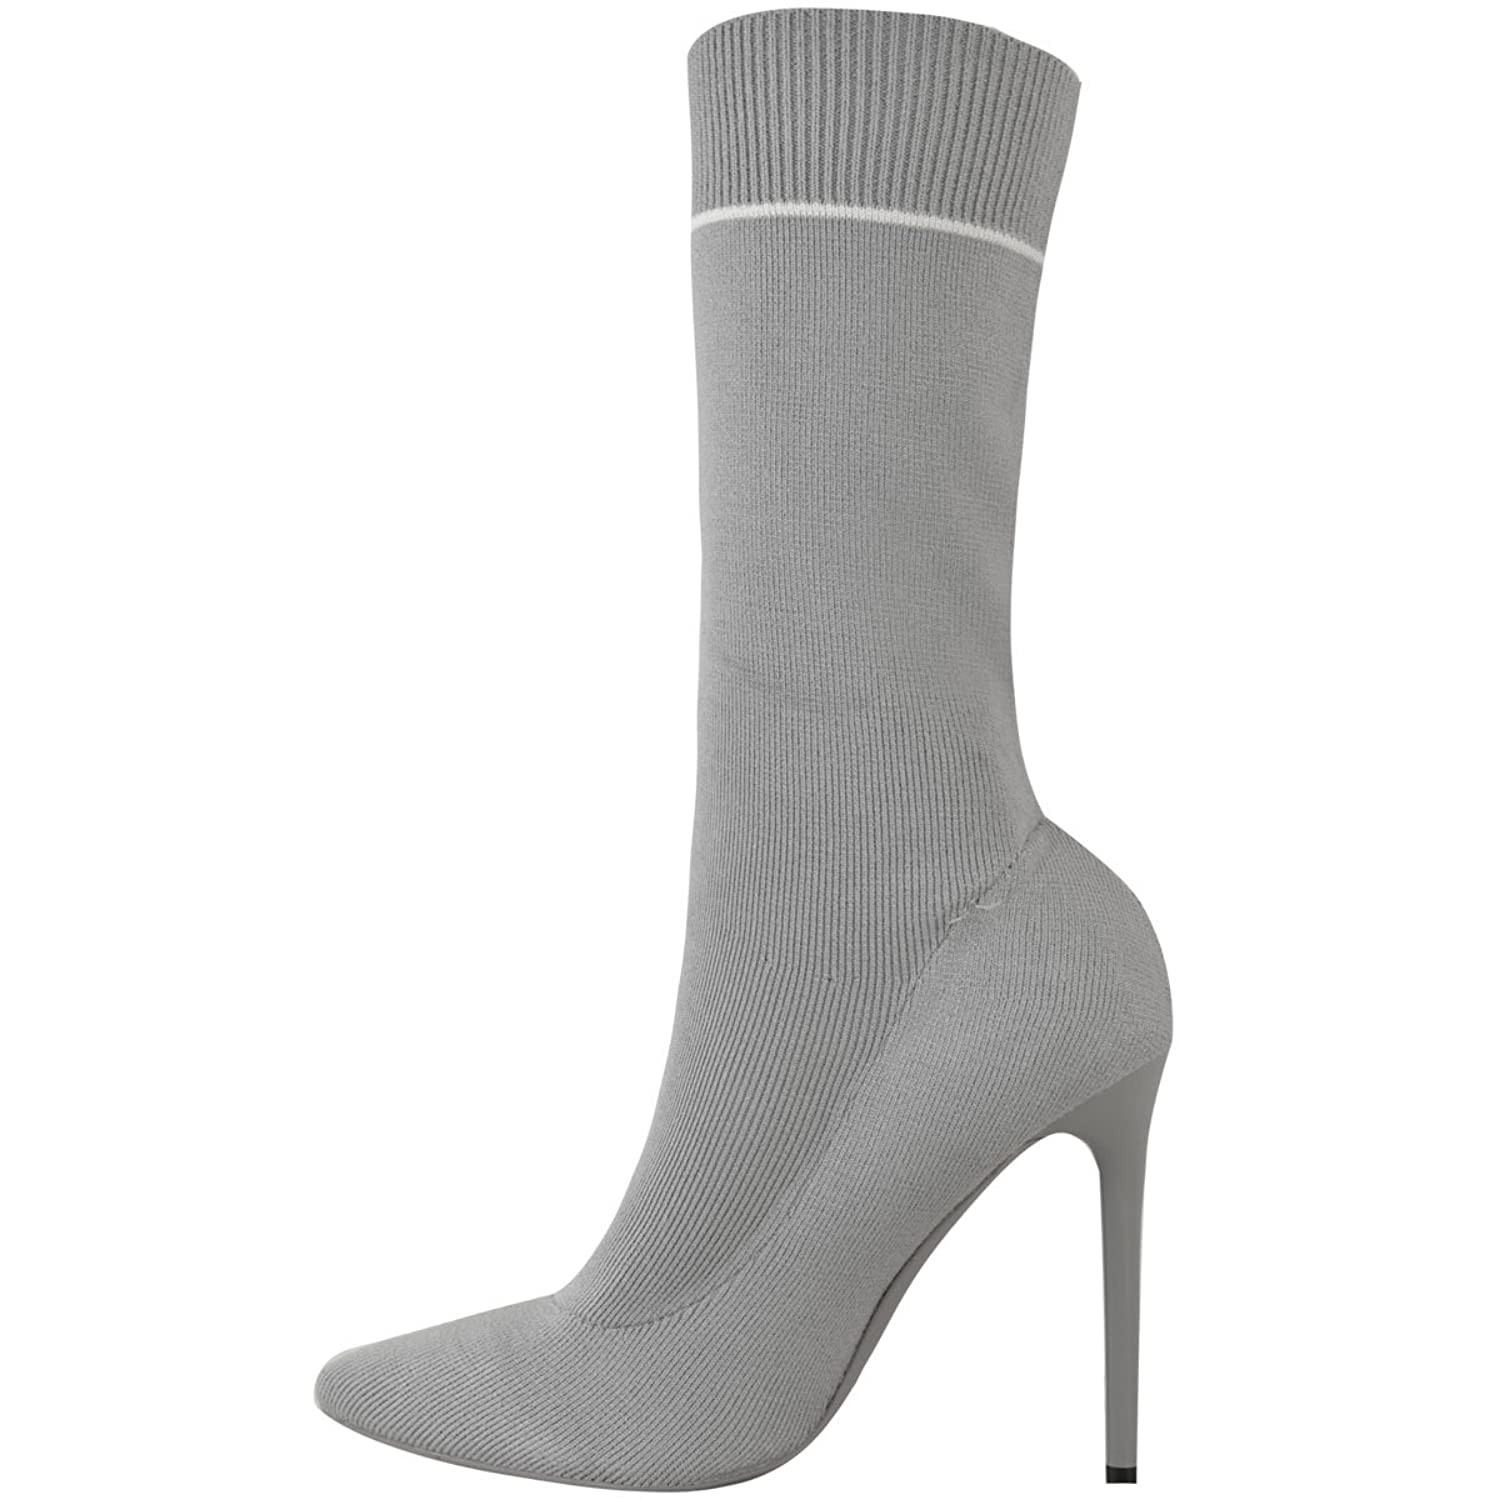 Damen High High Heels in Socken-Optik - elastisch - wadenlang - Stiletto-Absatz - Schwarzes Strickmuster - EUR 39 10nktM